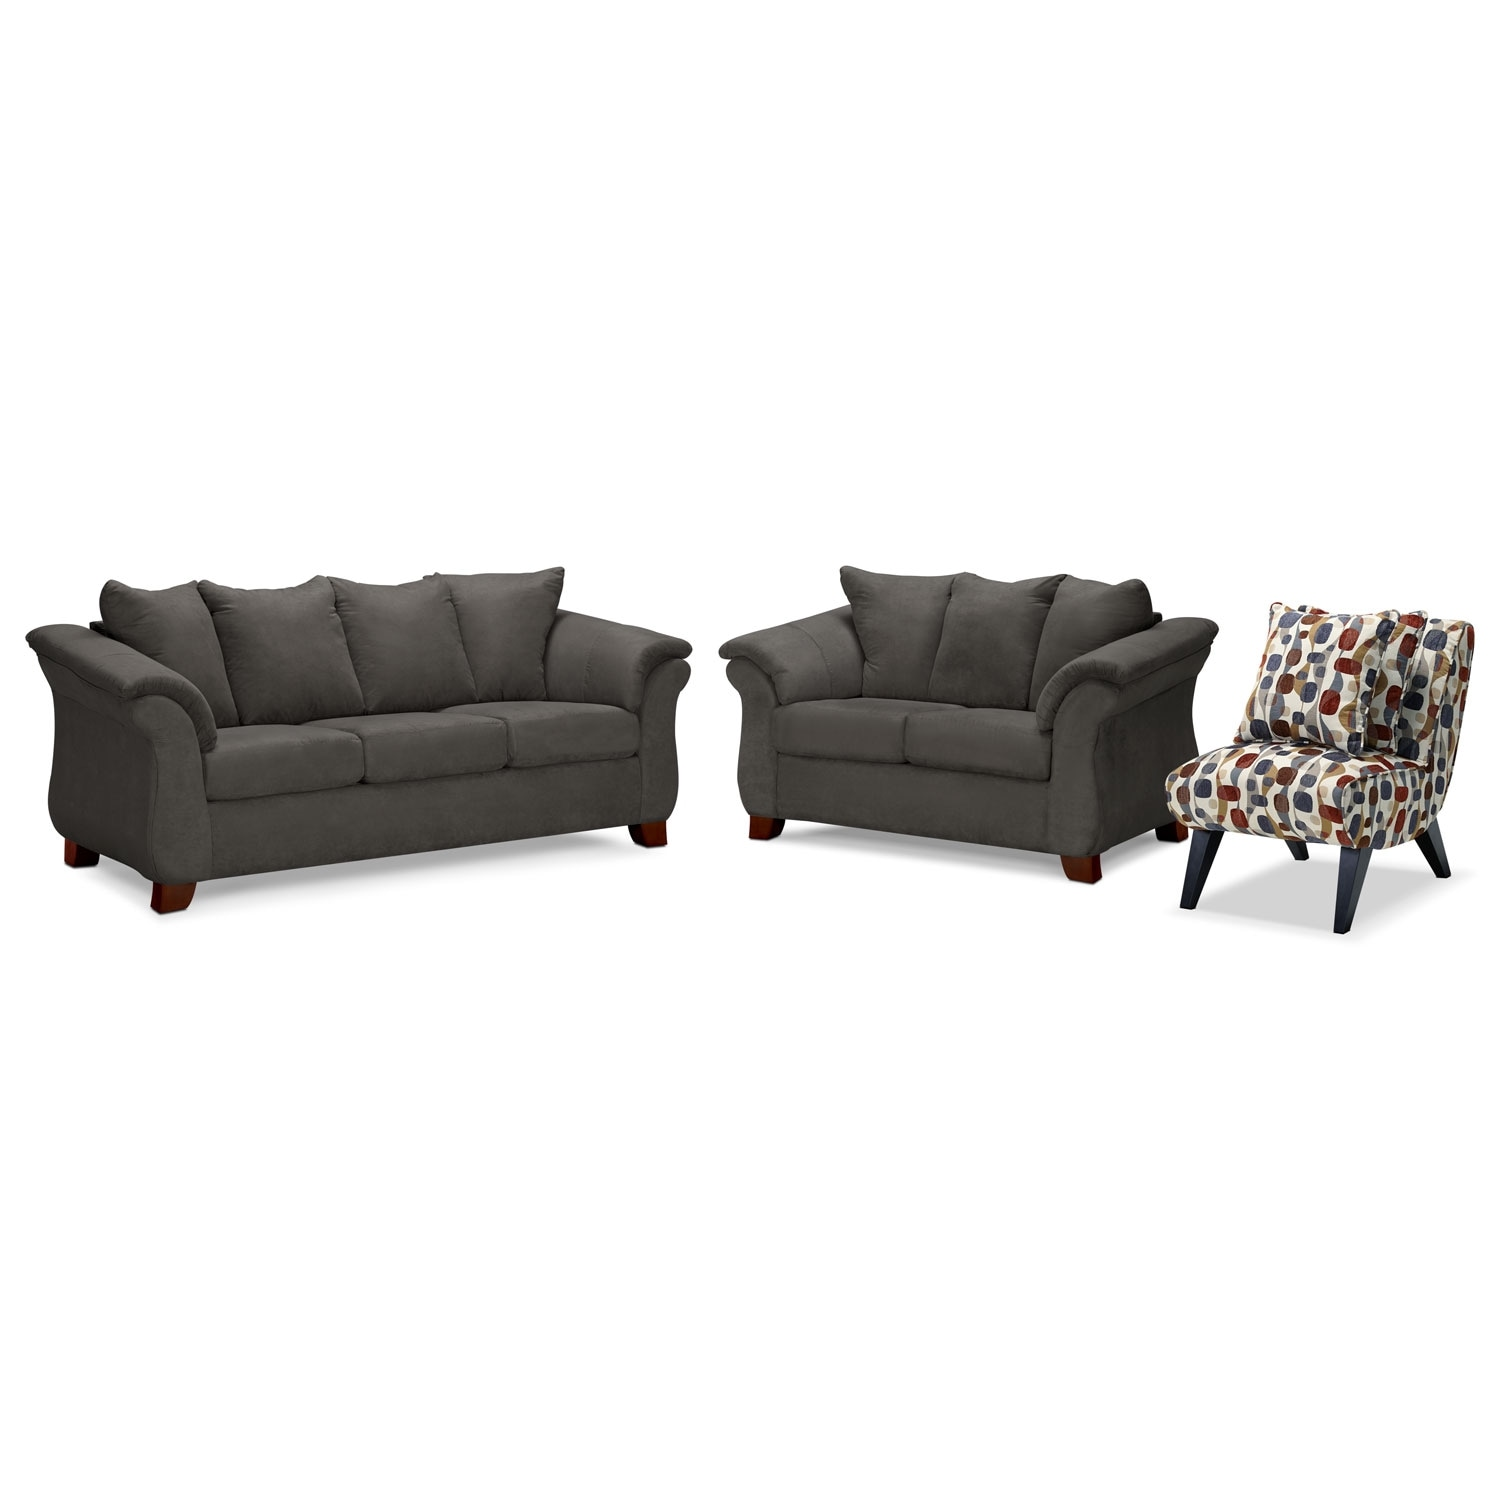 Sofa And Accent Chair Set